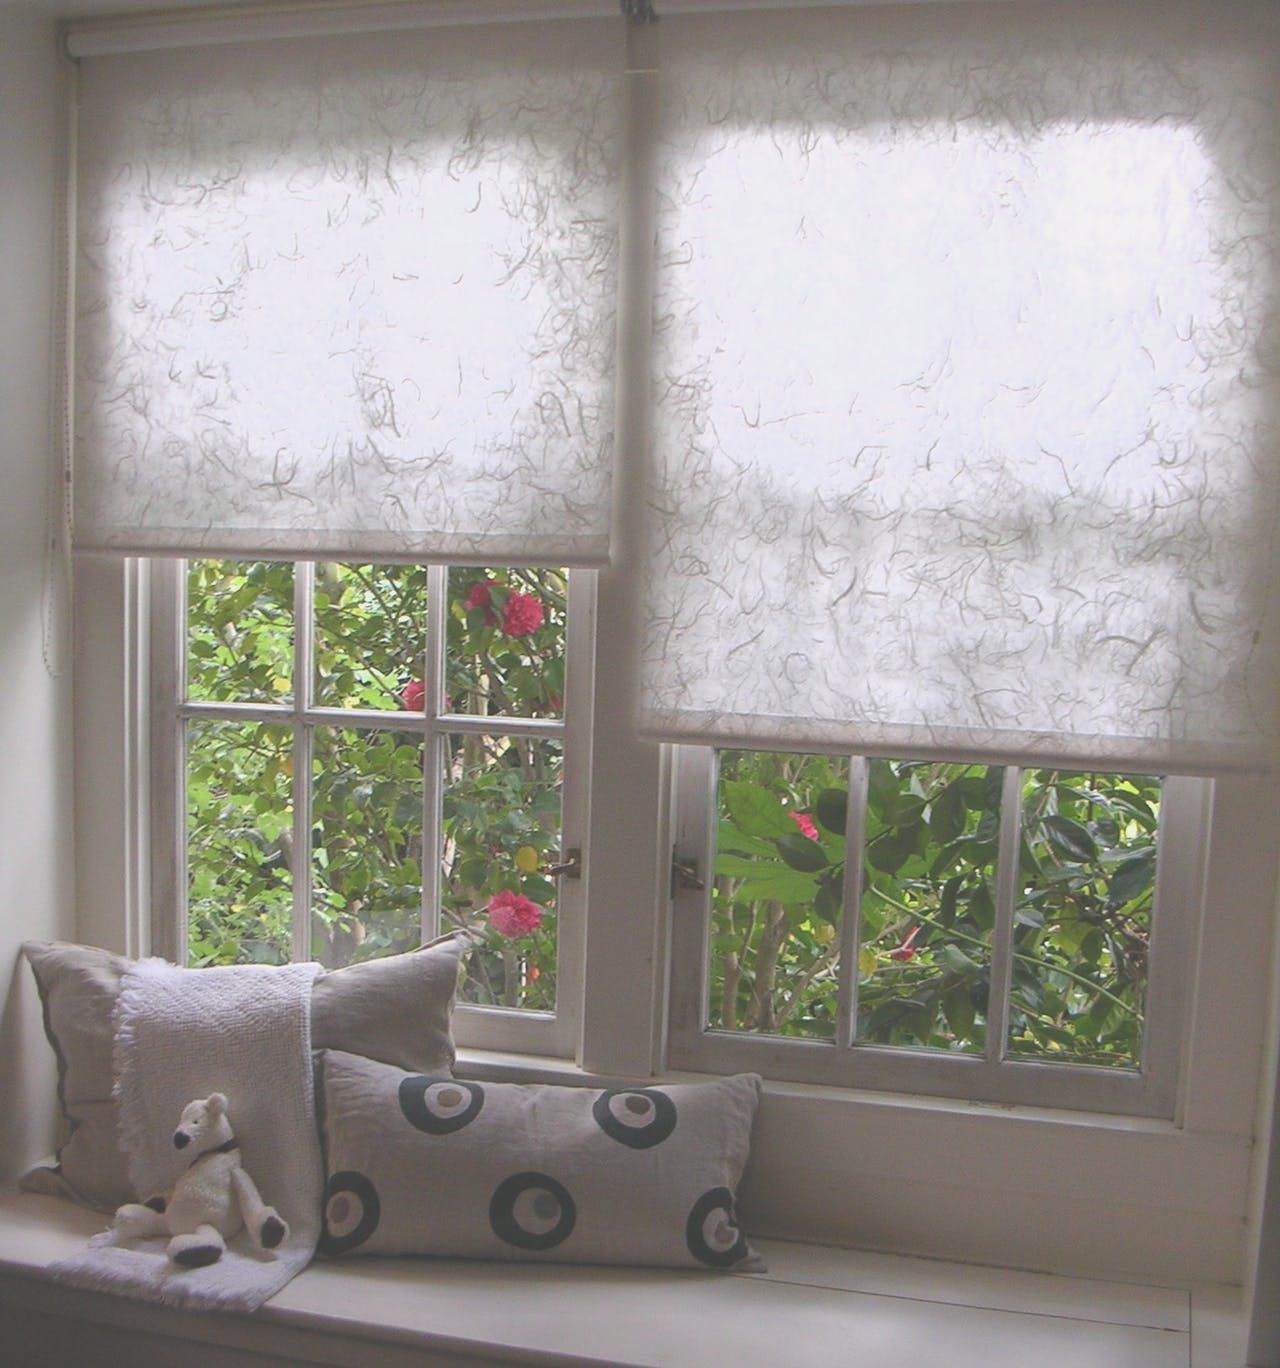 rice paper window shades sliding door how to make rice paper roller shades blinds diy window shades blinds guest post viewpoint